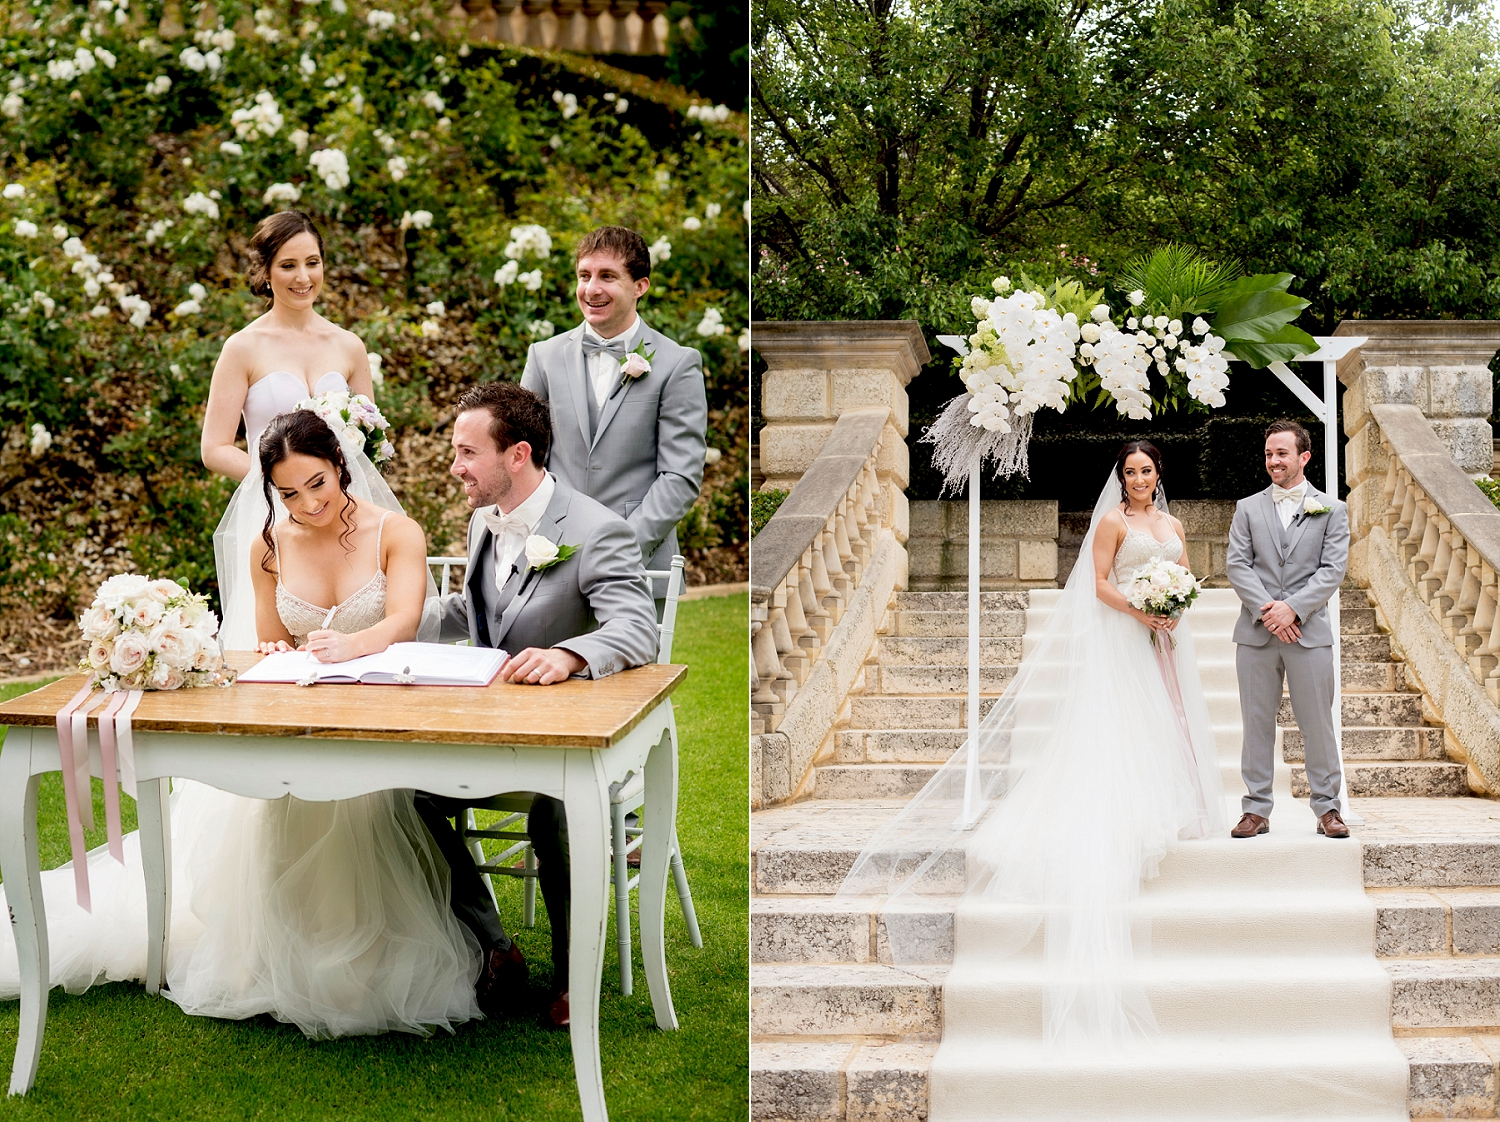 19_caversham house wedding perth.jpg